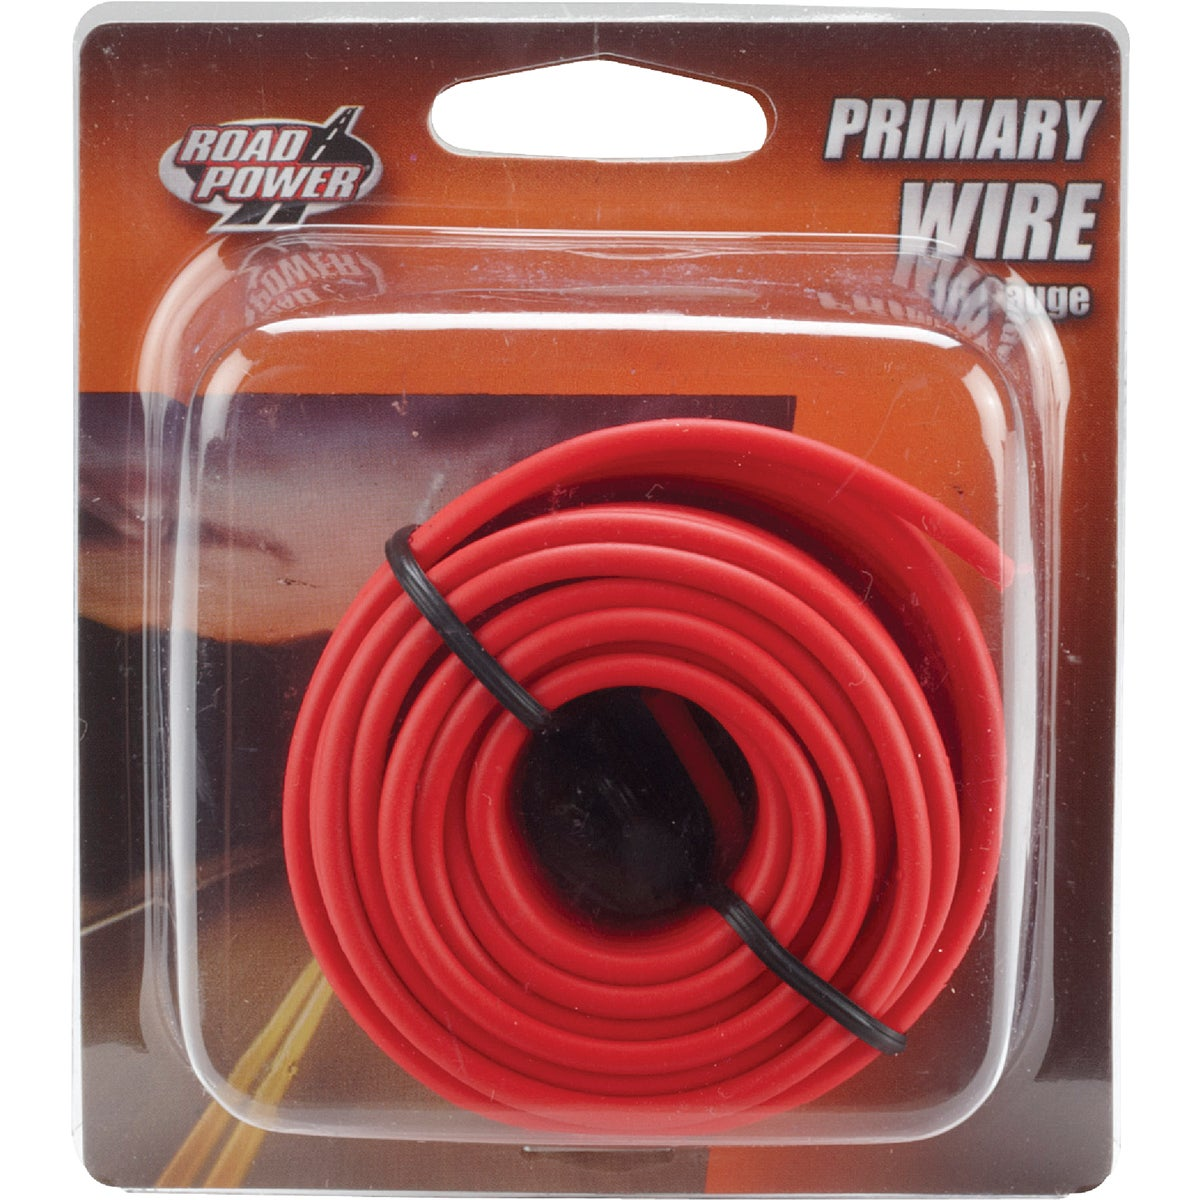 24' 16GA RED AUTO WIRE - 16-1-16 by Woods Wire Coleman